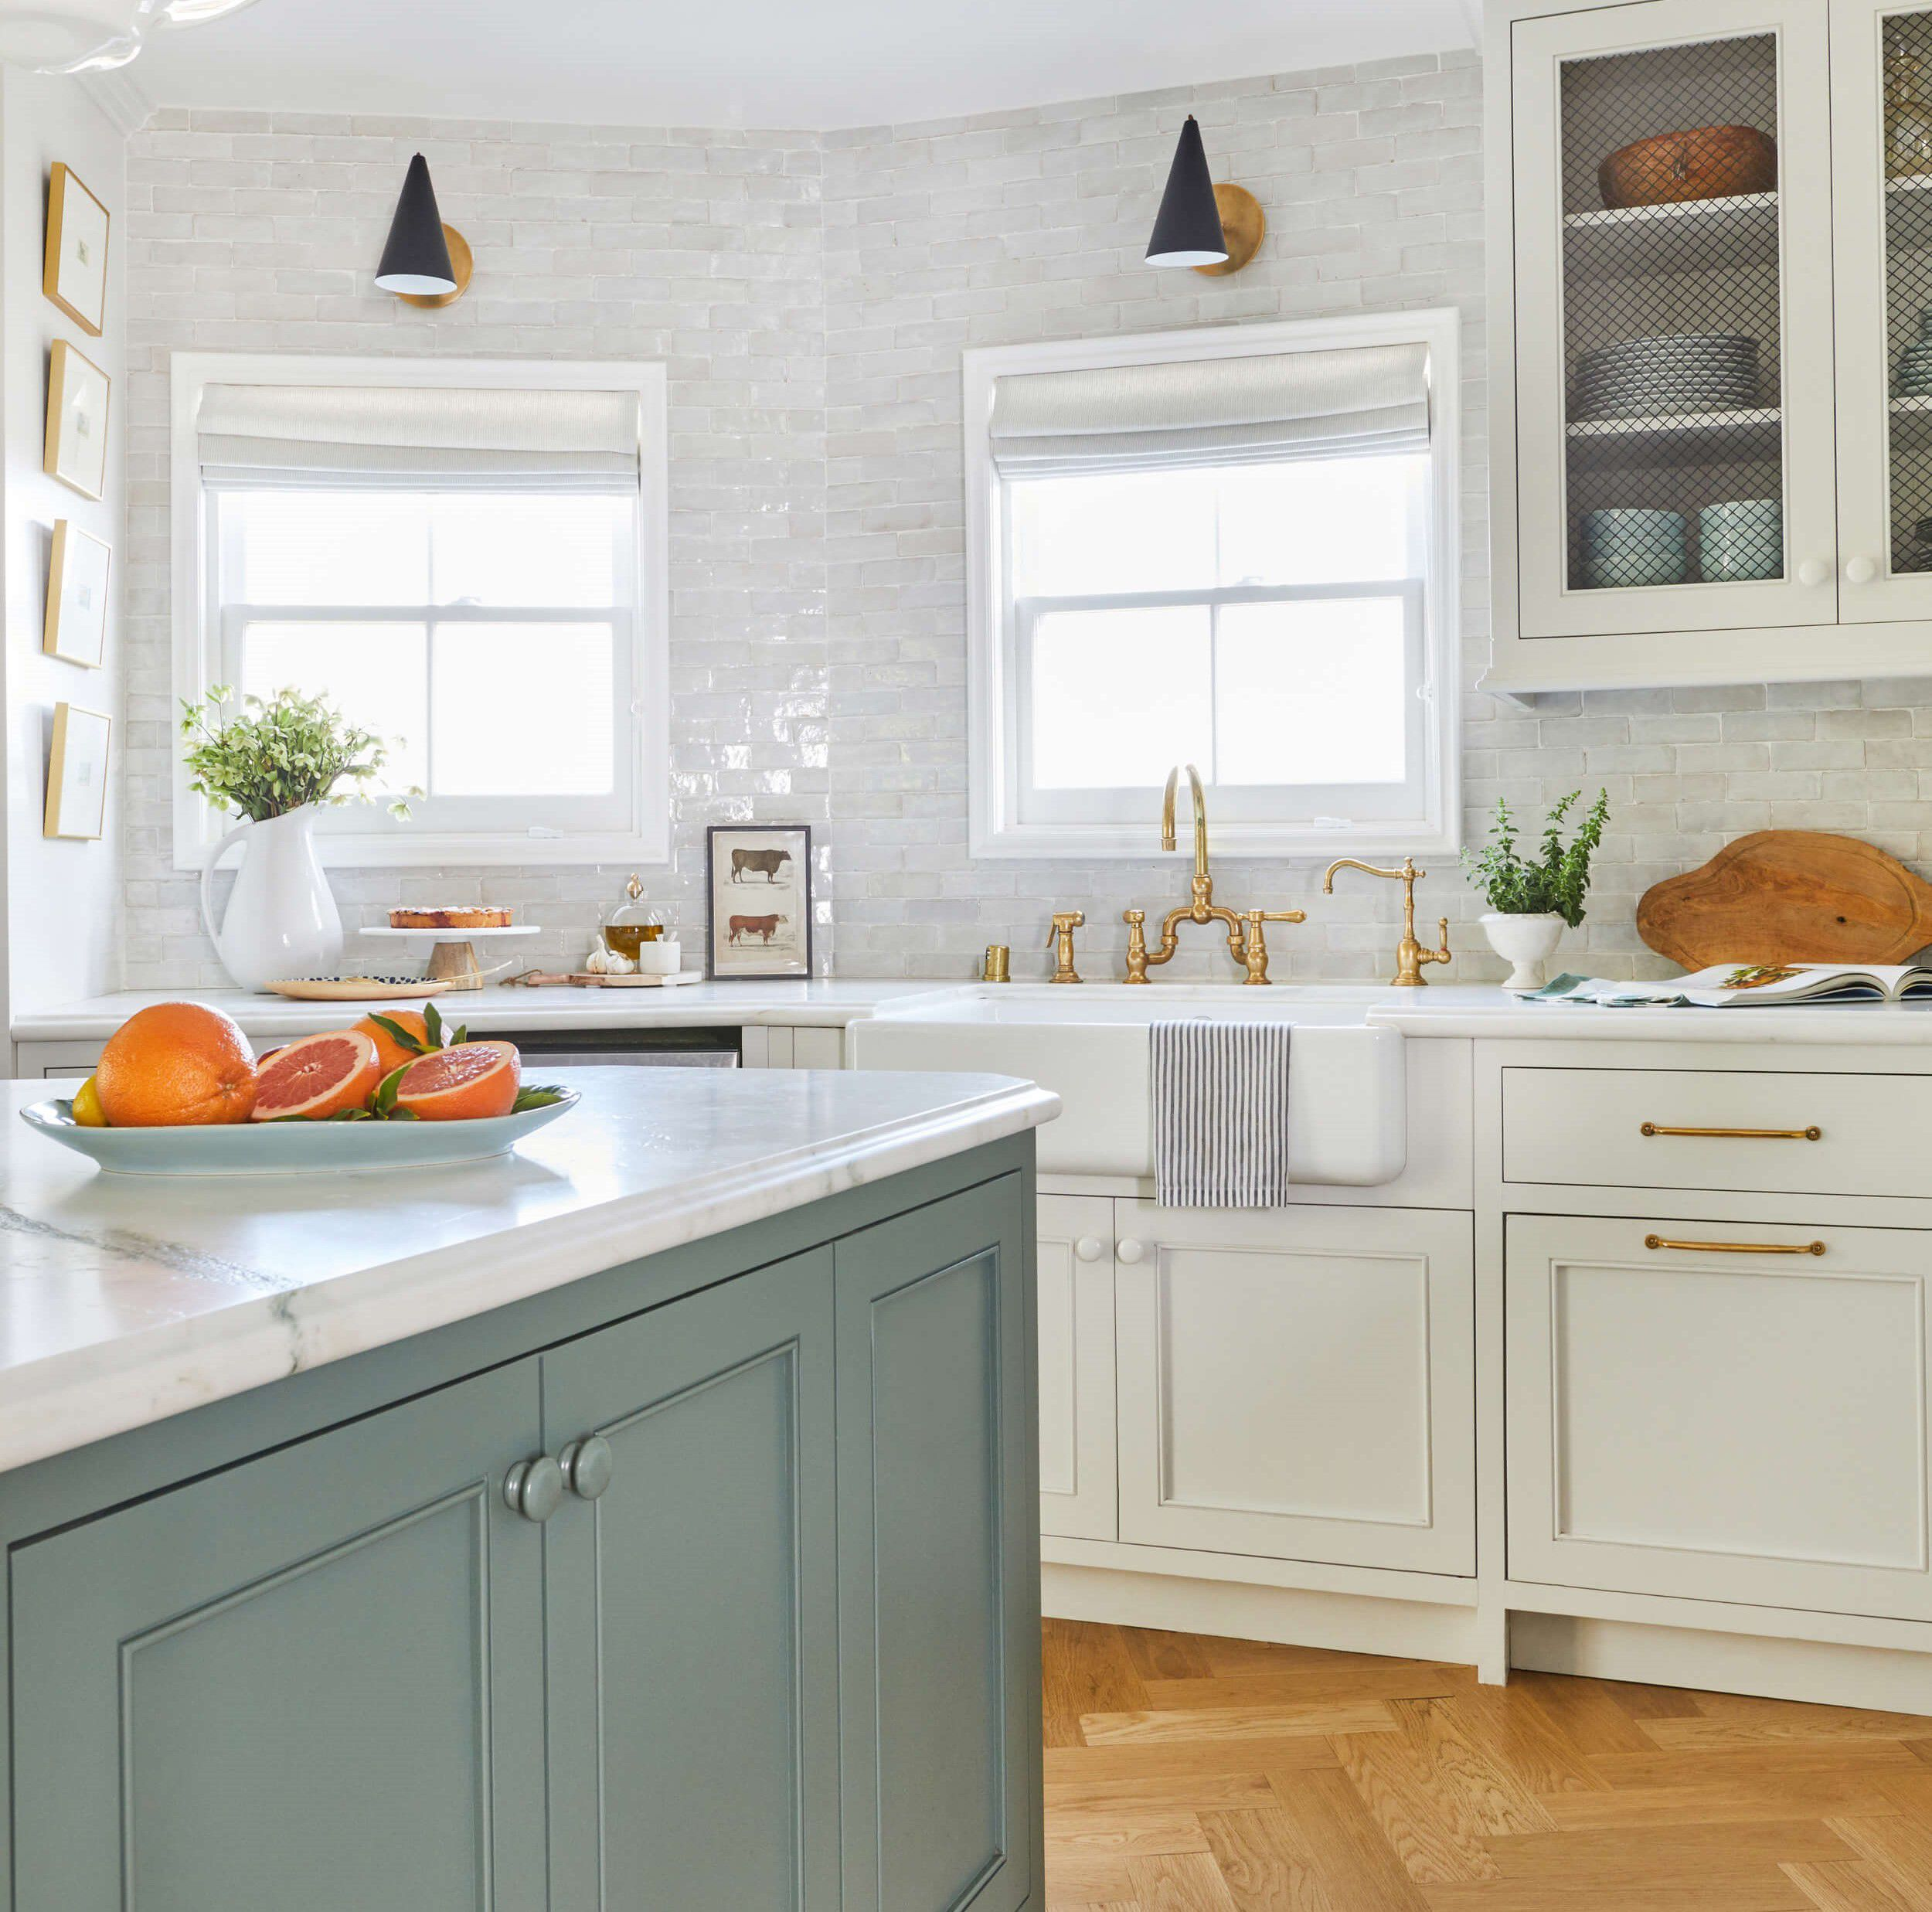 6 Kitchen Backsplash Ideas That Will Transform Your Space